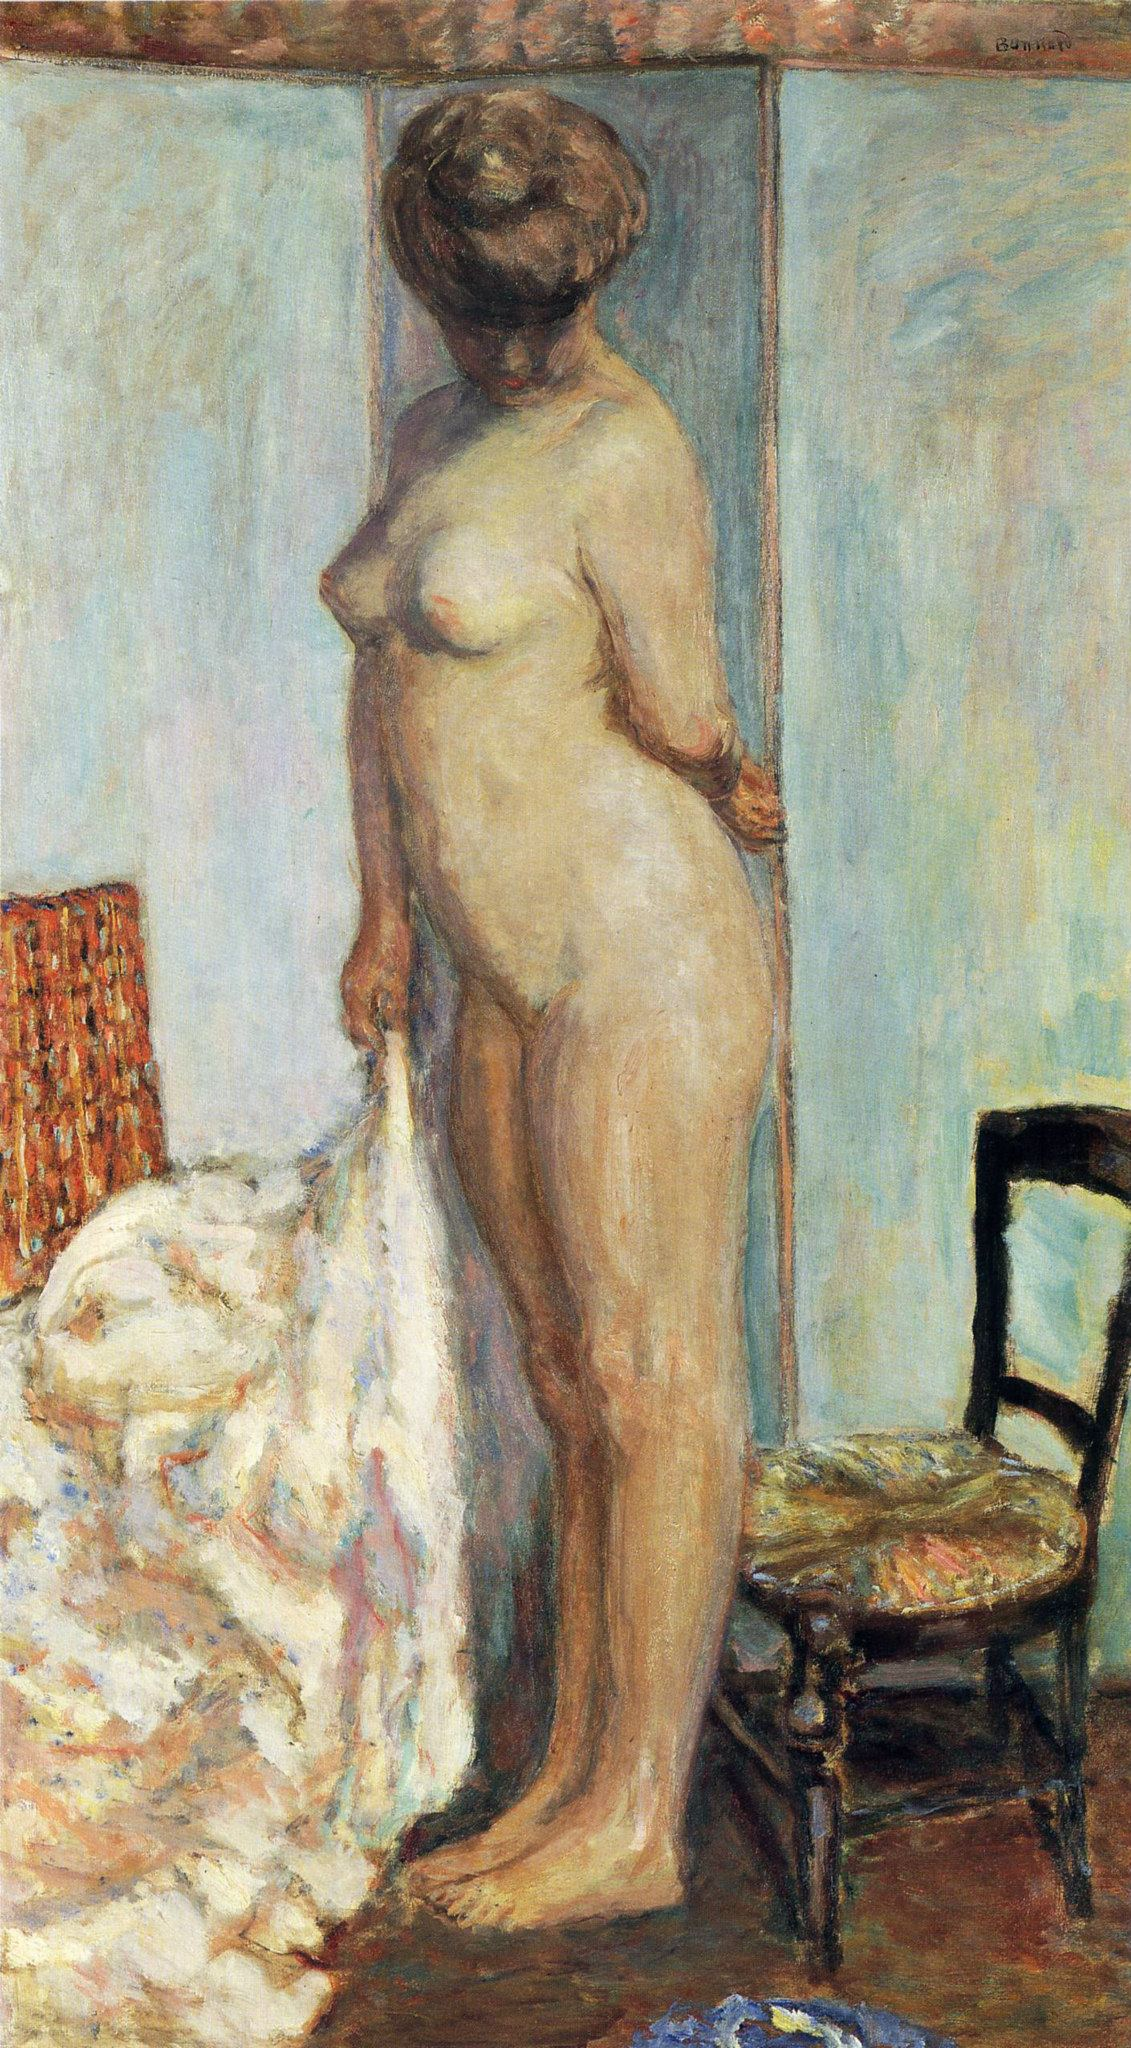 Tall Nude (Also Known As Woman Nude Standing), Pierre Bonnard, 1906